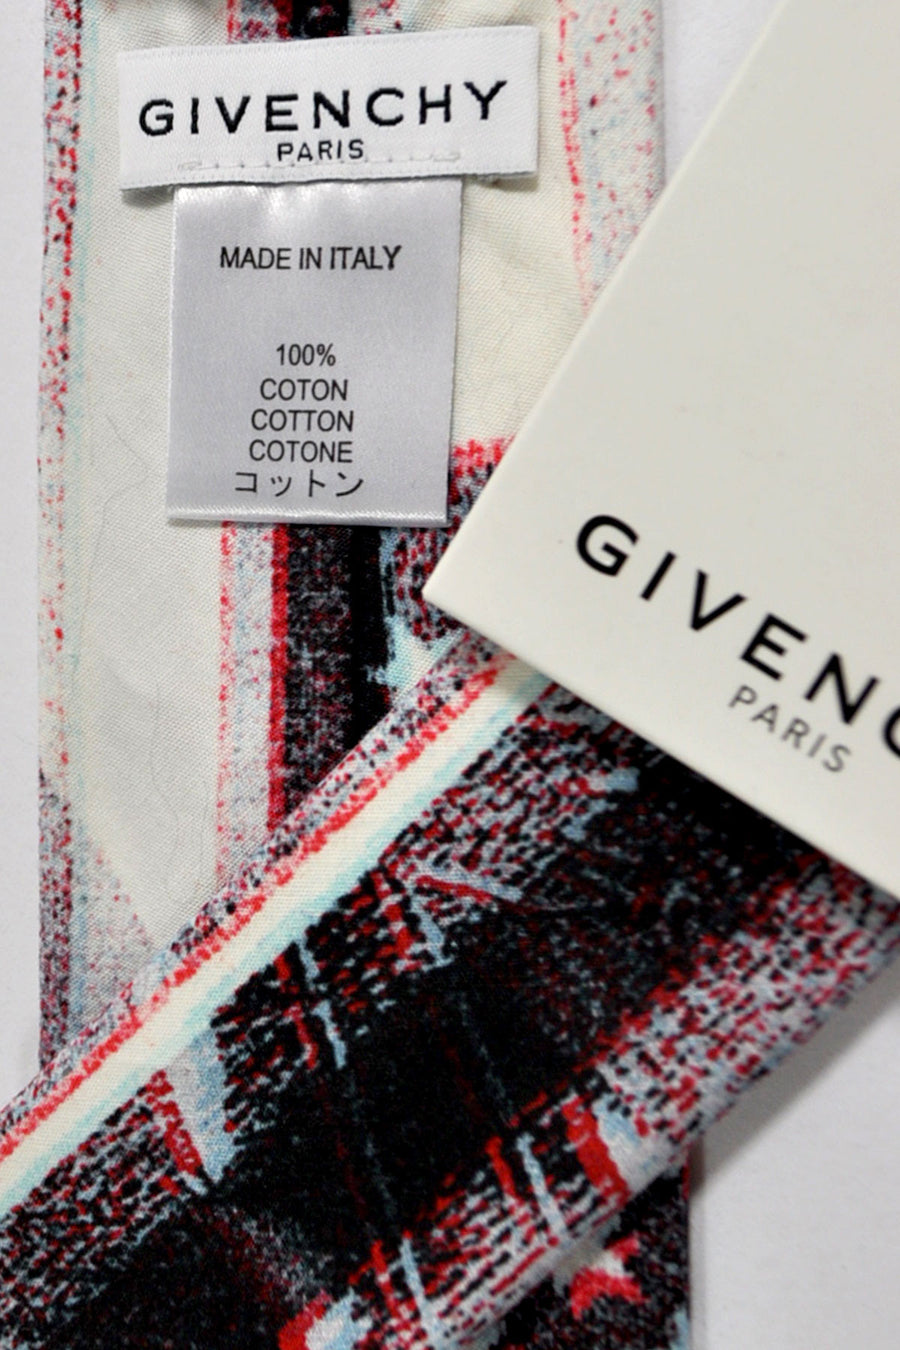 Givenchy Tie White Navy Flag - Narrow Cut